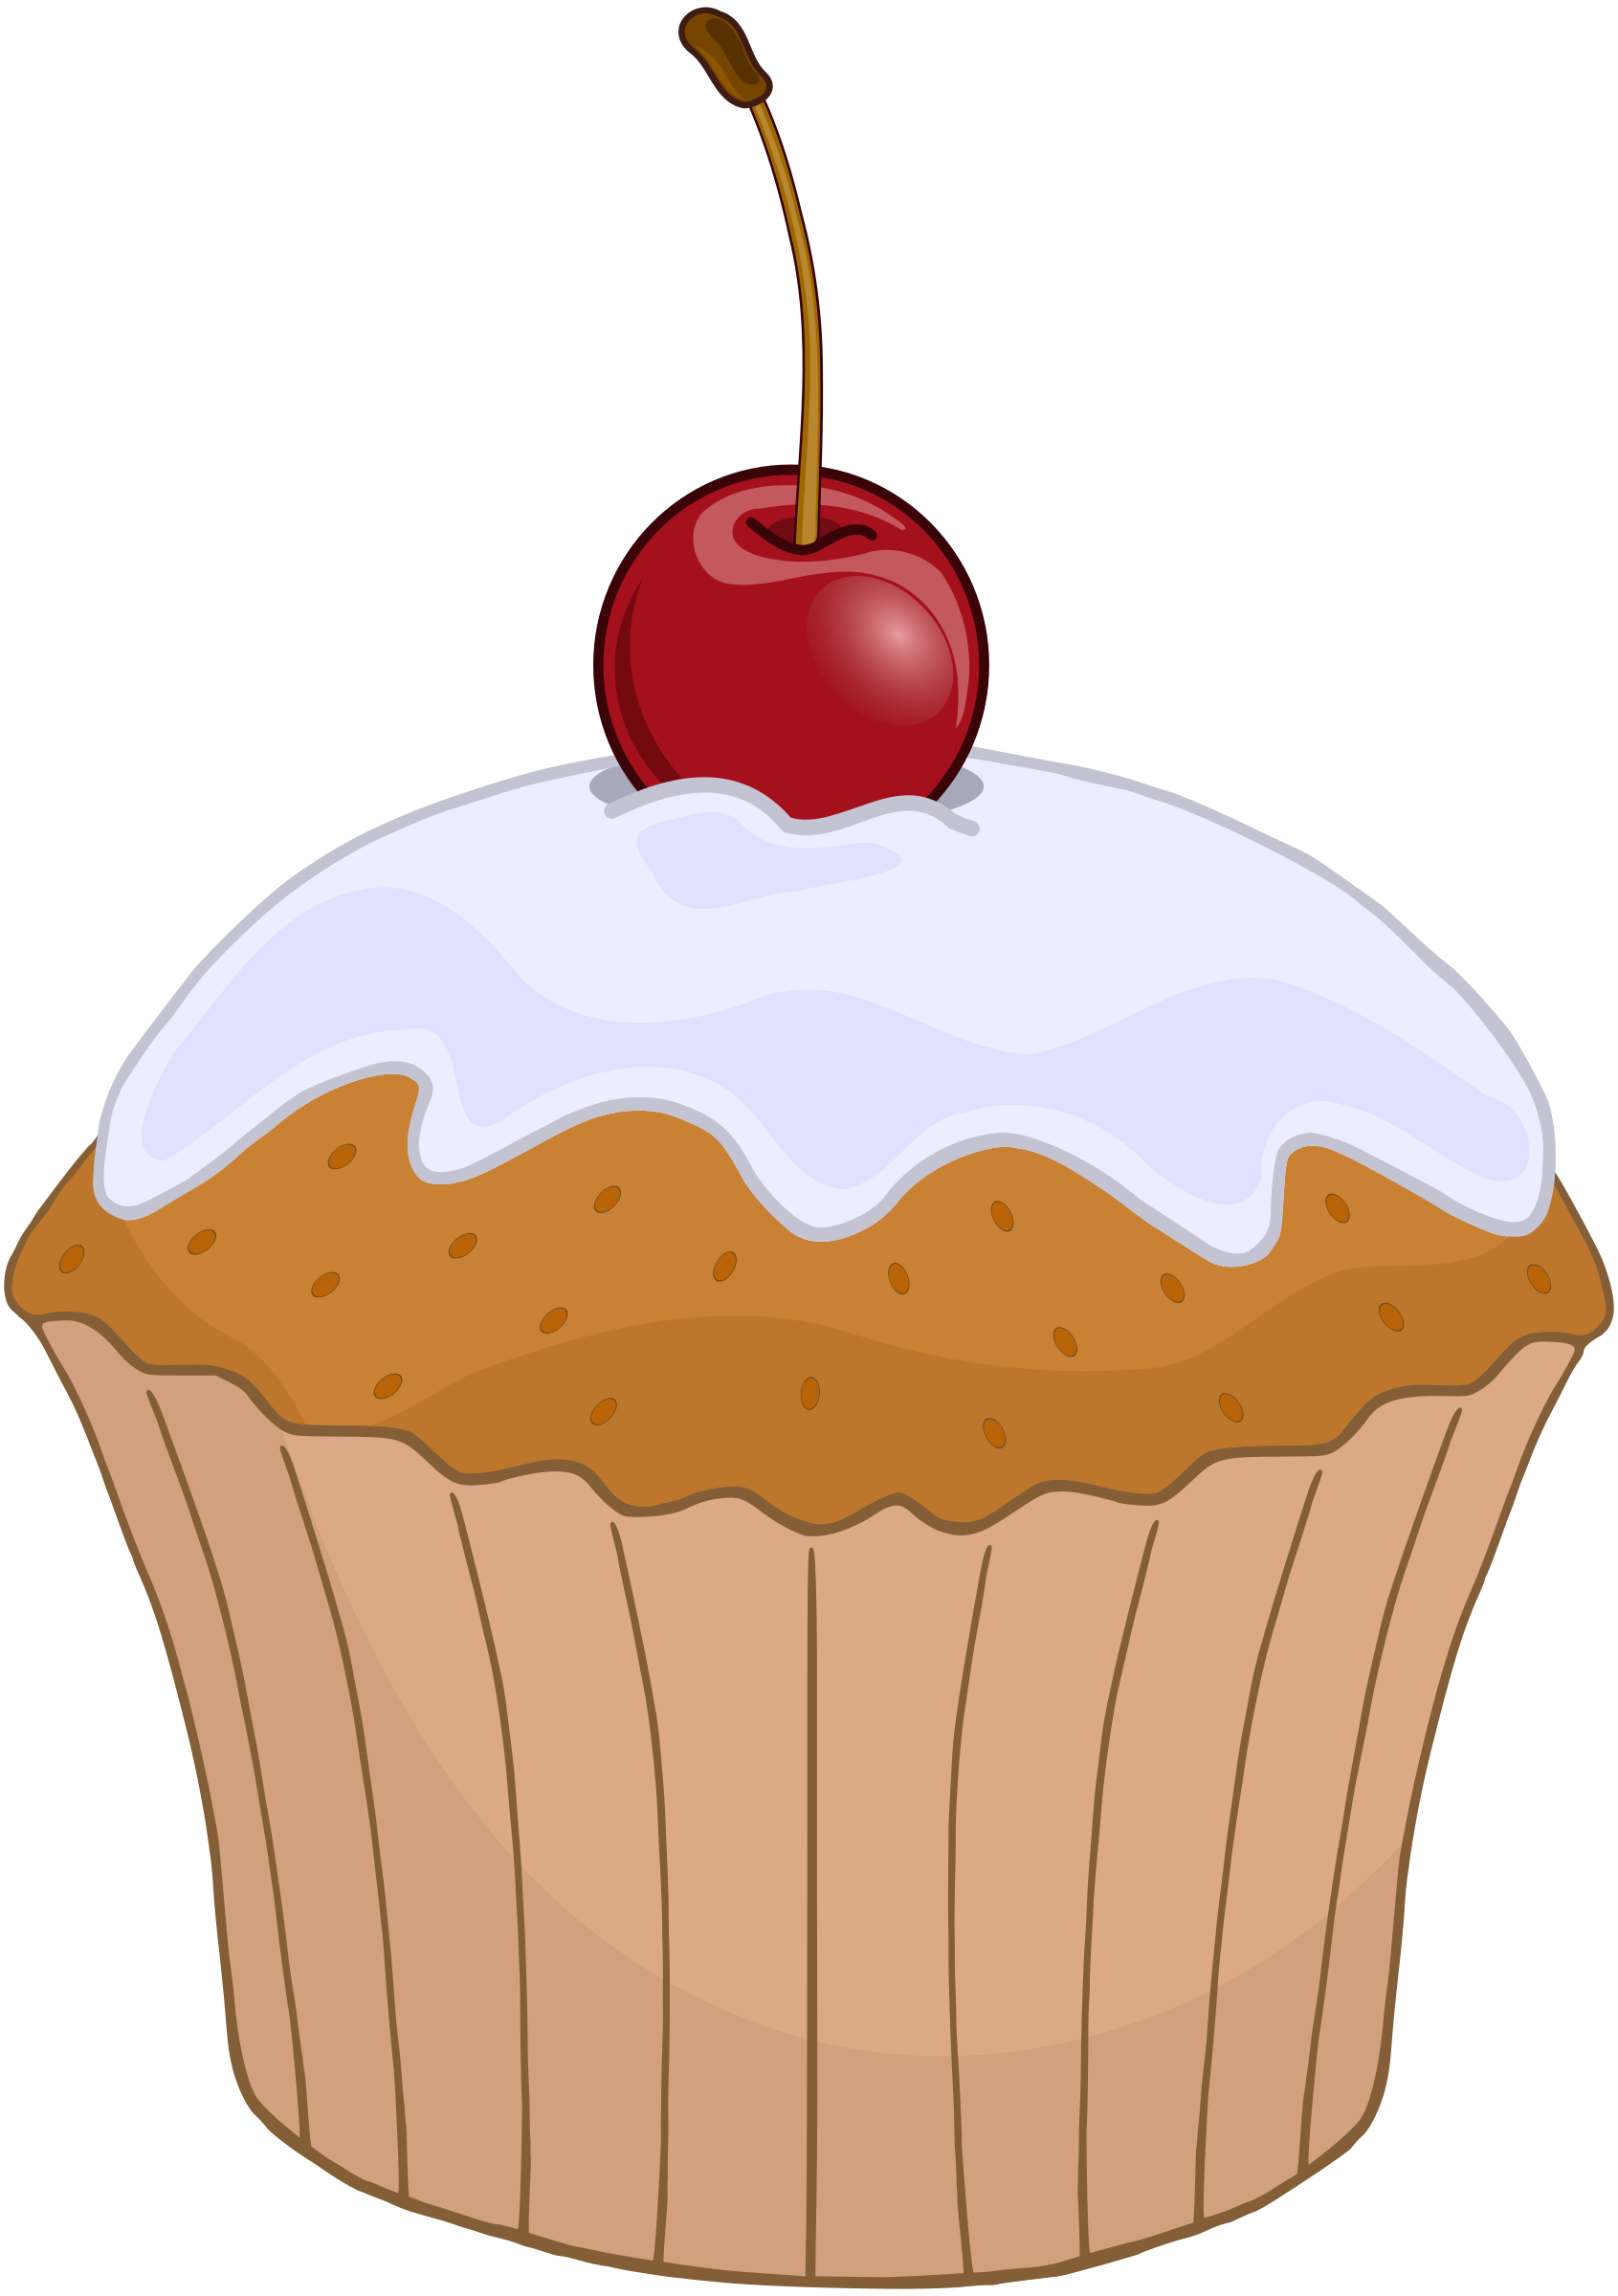 Muffins clipart cartoon. Muffin big image png